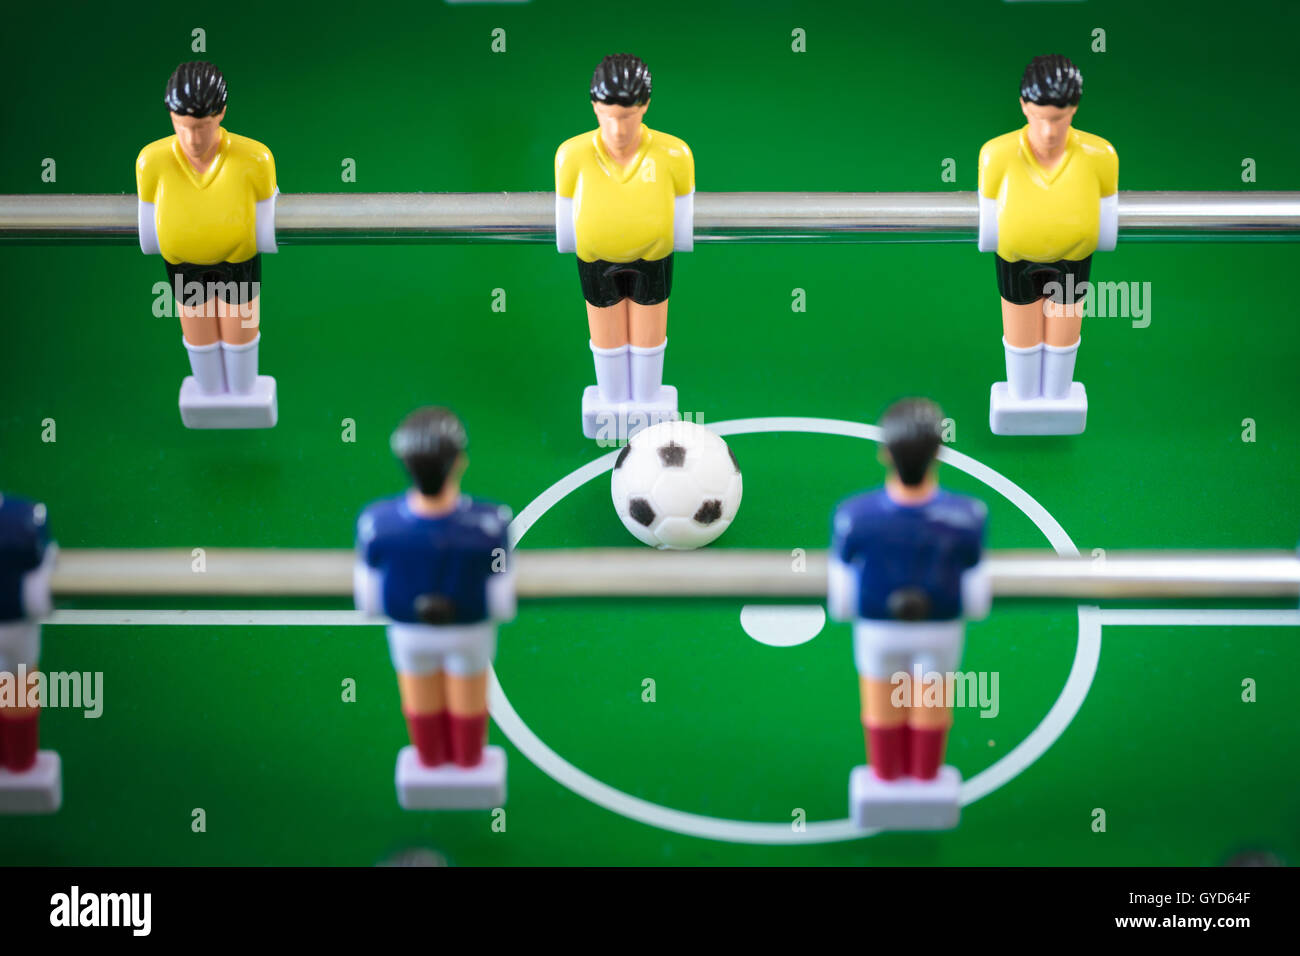 Football players miniatures from the kicker table game - Stock Image